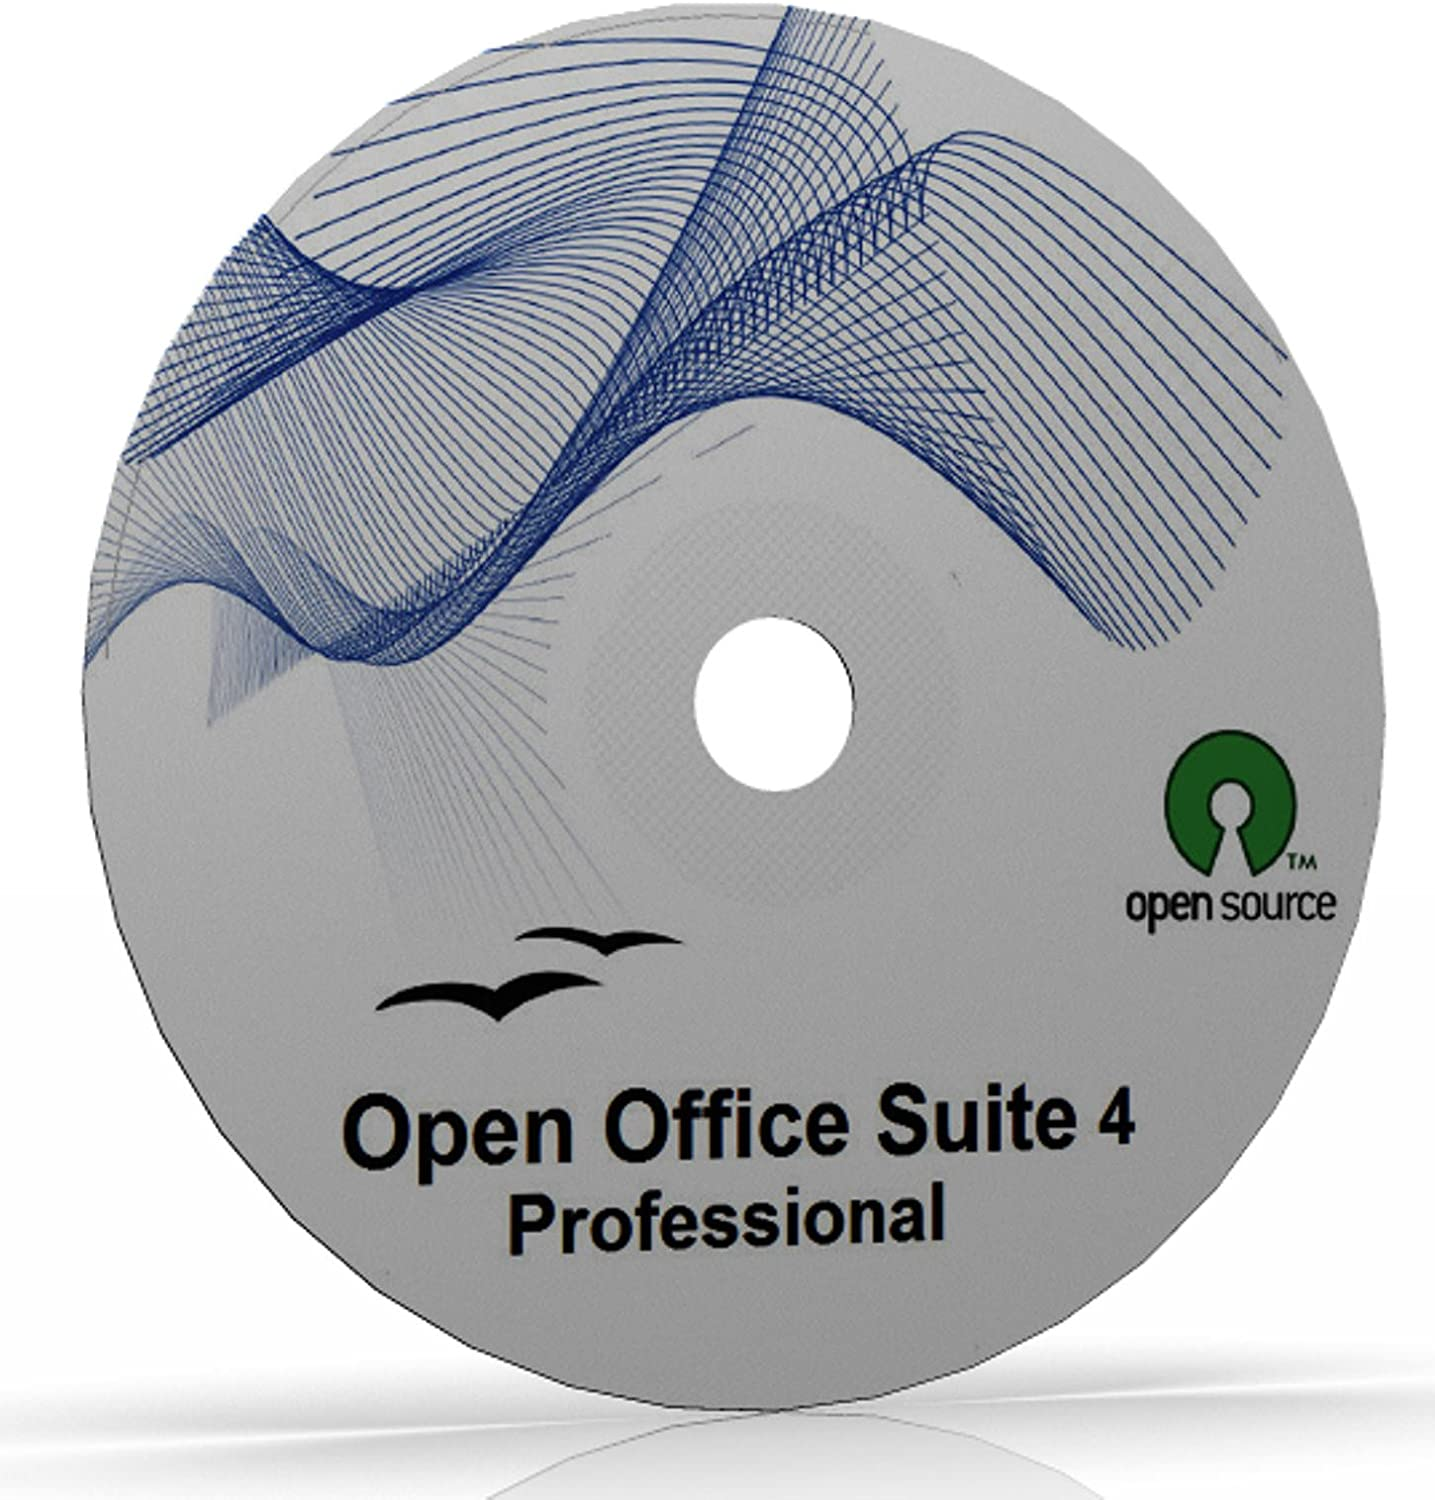 Open Office Suite 4.0 (2013 Edition) on CD-ROM for Windows (XP, Vista, 7, 8) & Mac - Microsoft Word Compatible